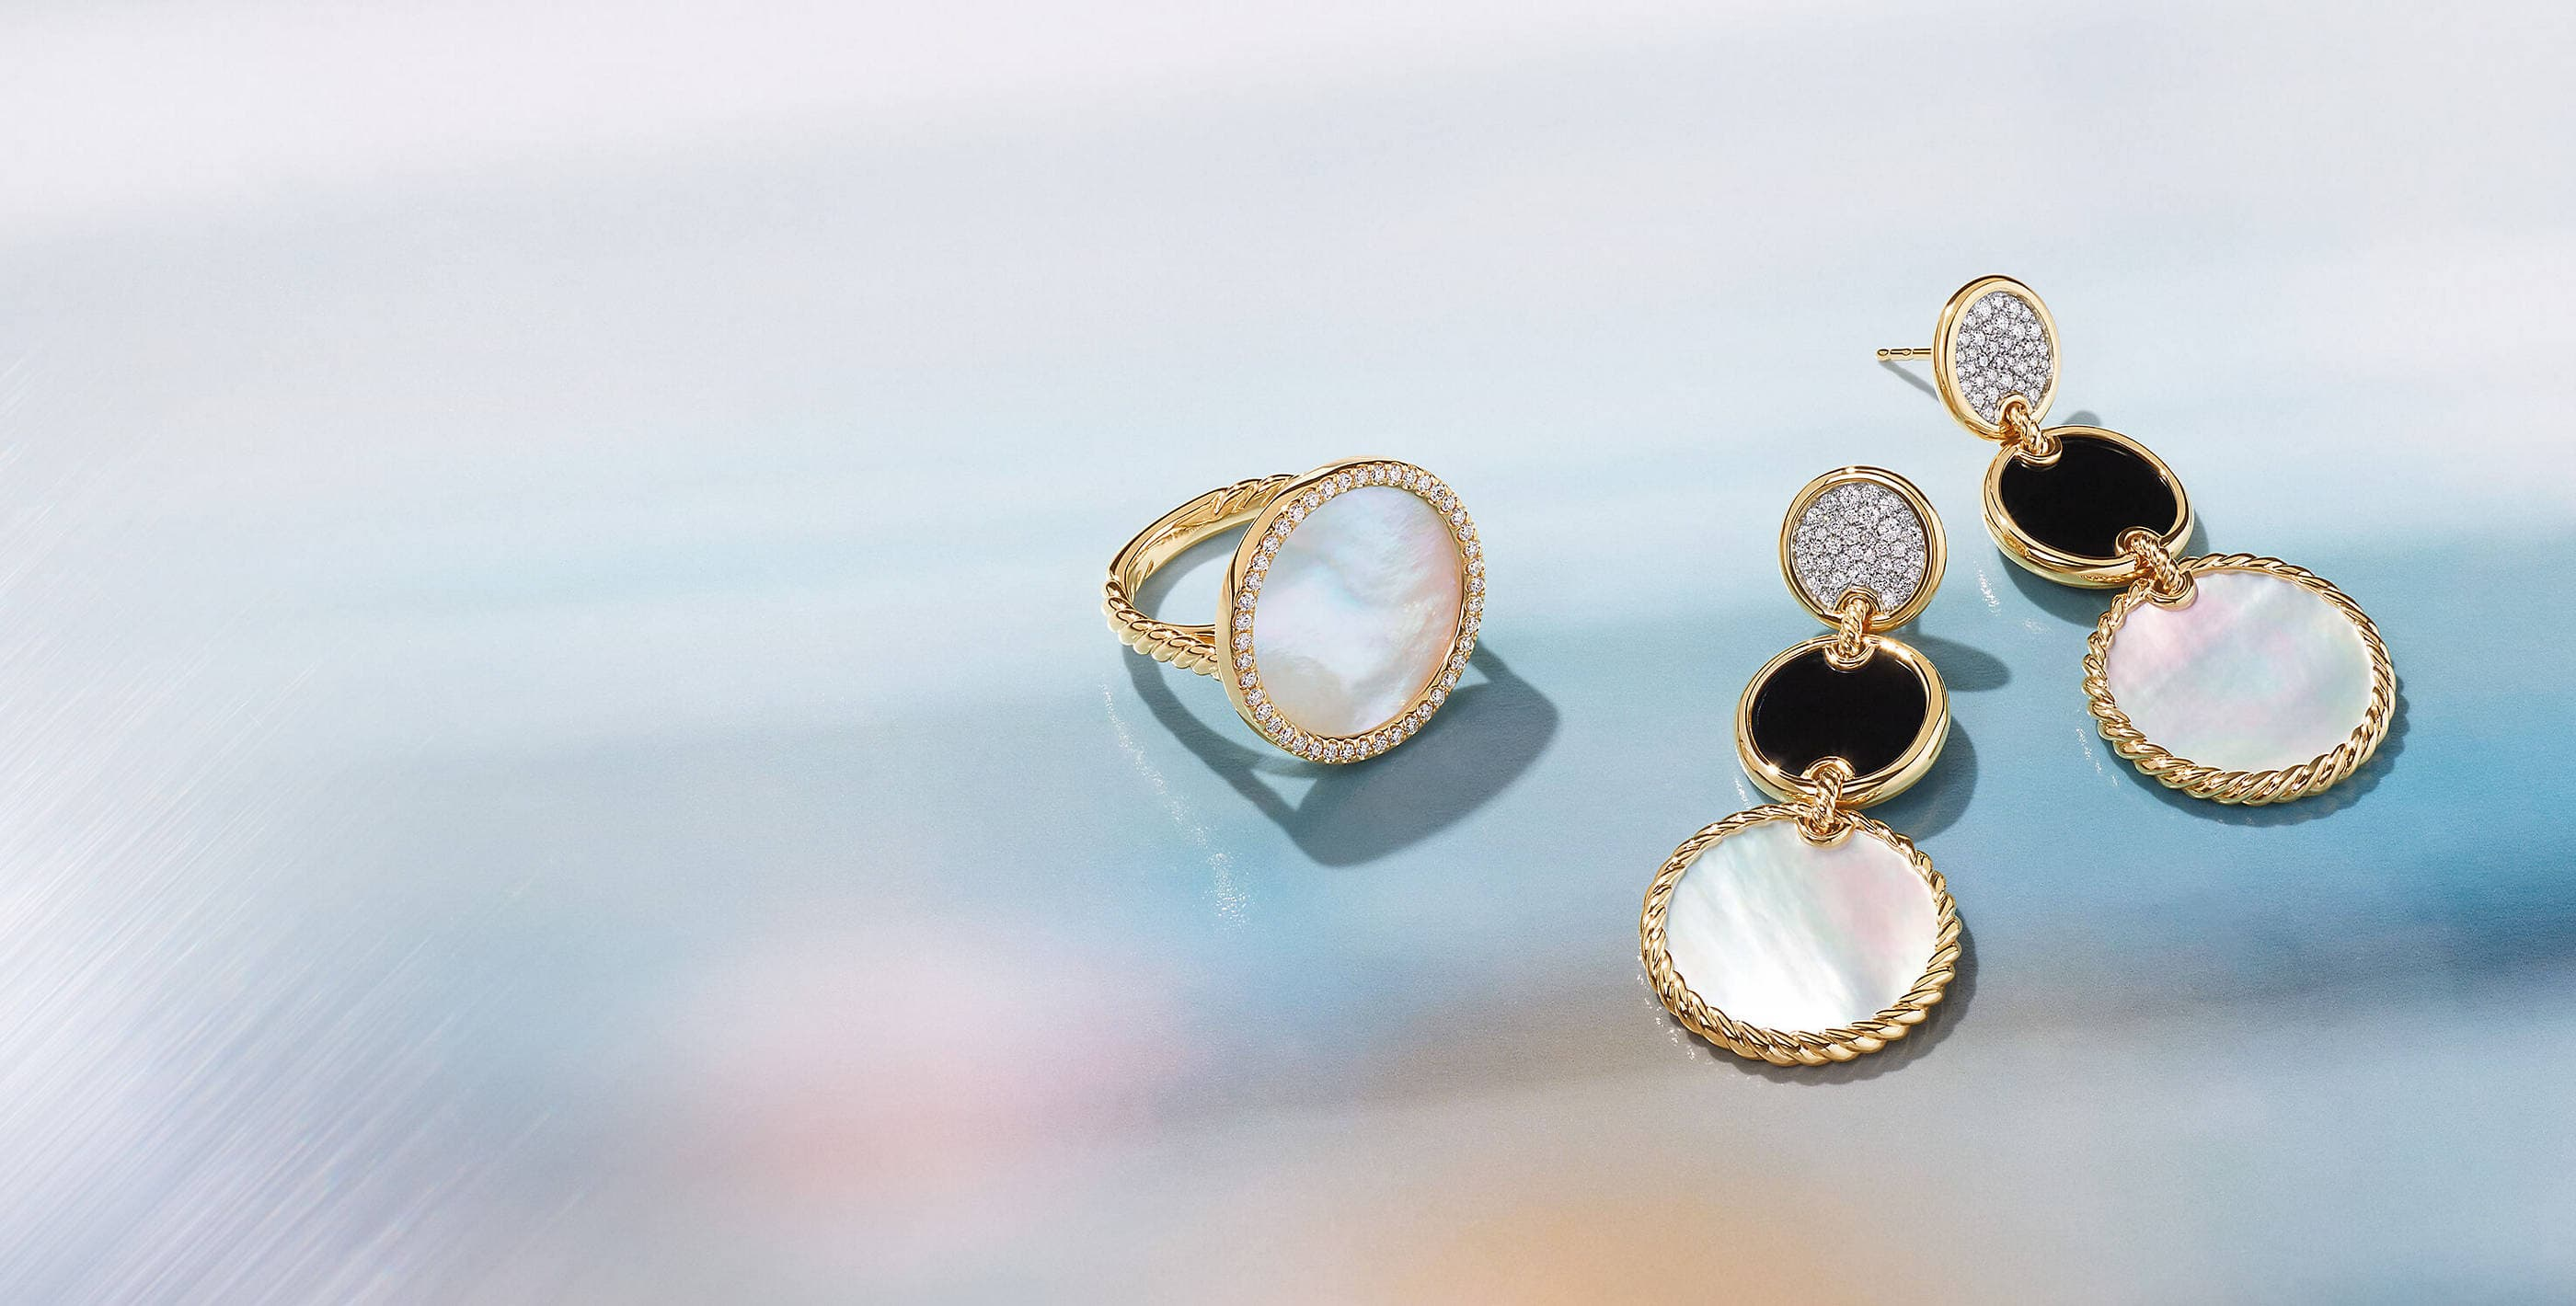 A color photo shows a David Yurman Elements ring placed next to a pair of Elements drop earrings on an opalescent background. The jewelry is crafted from 18K yellow gold with pavé diamonds, mother-of-pearl and black onyx.